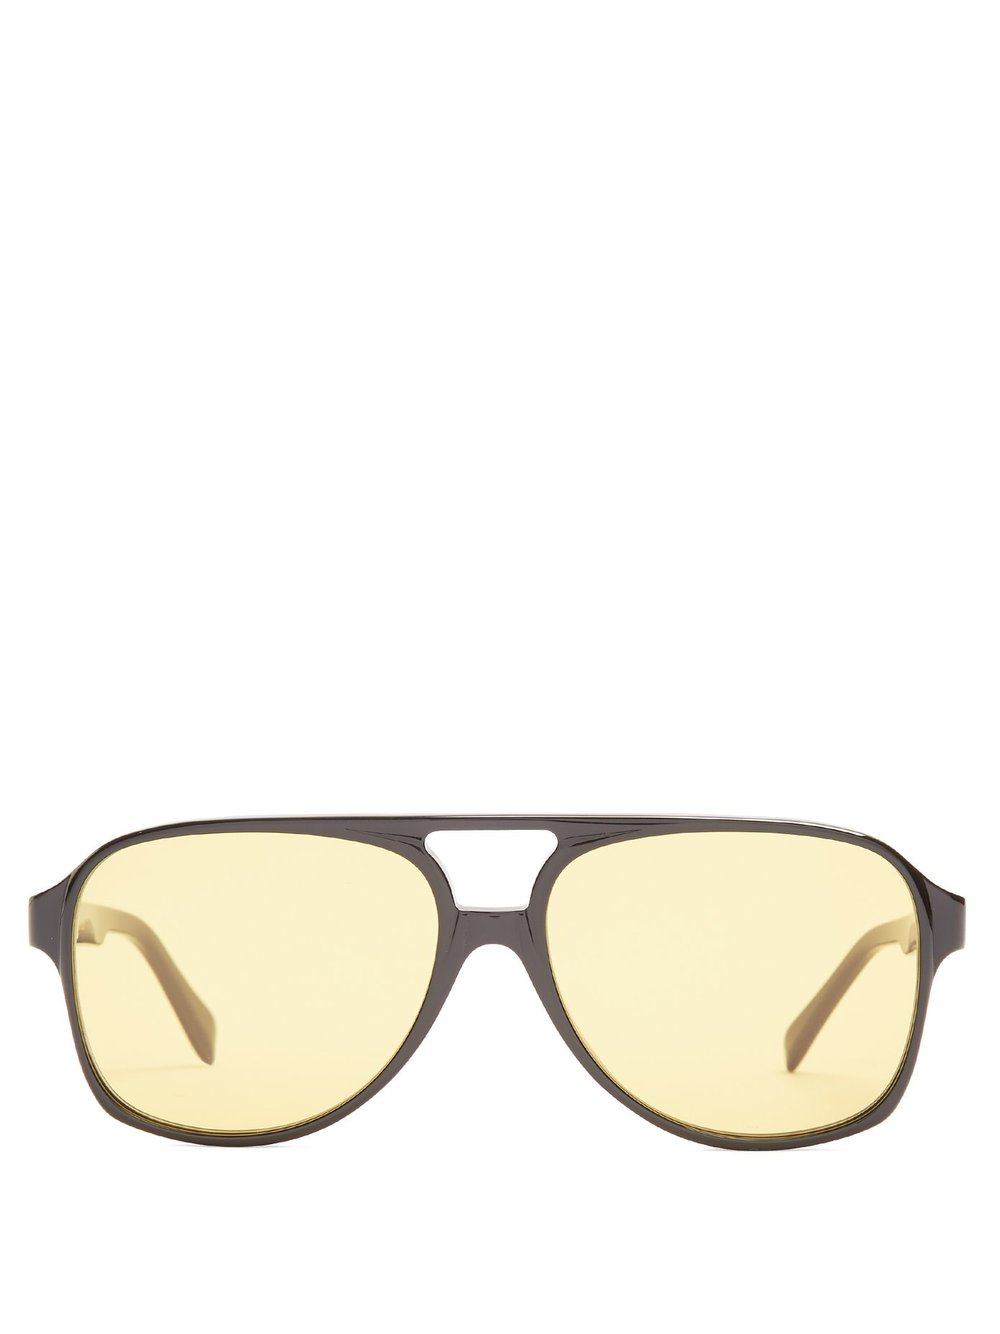 Céline - These sunglasses are my new signature style, and I love wearing them both indoors and outdoors (obnoxious? Maybe).